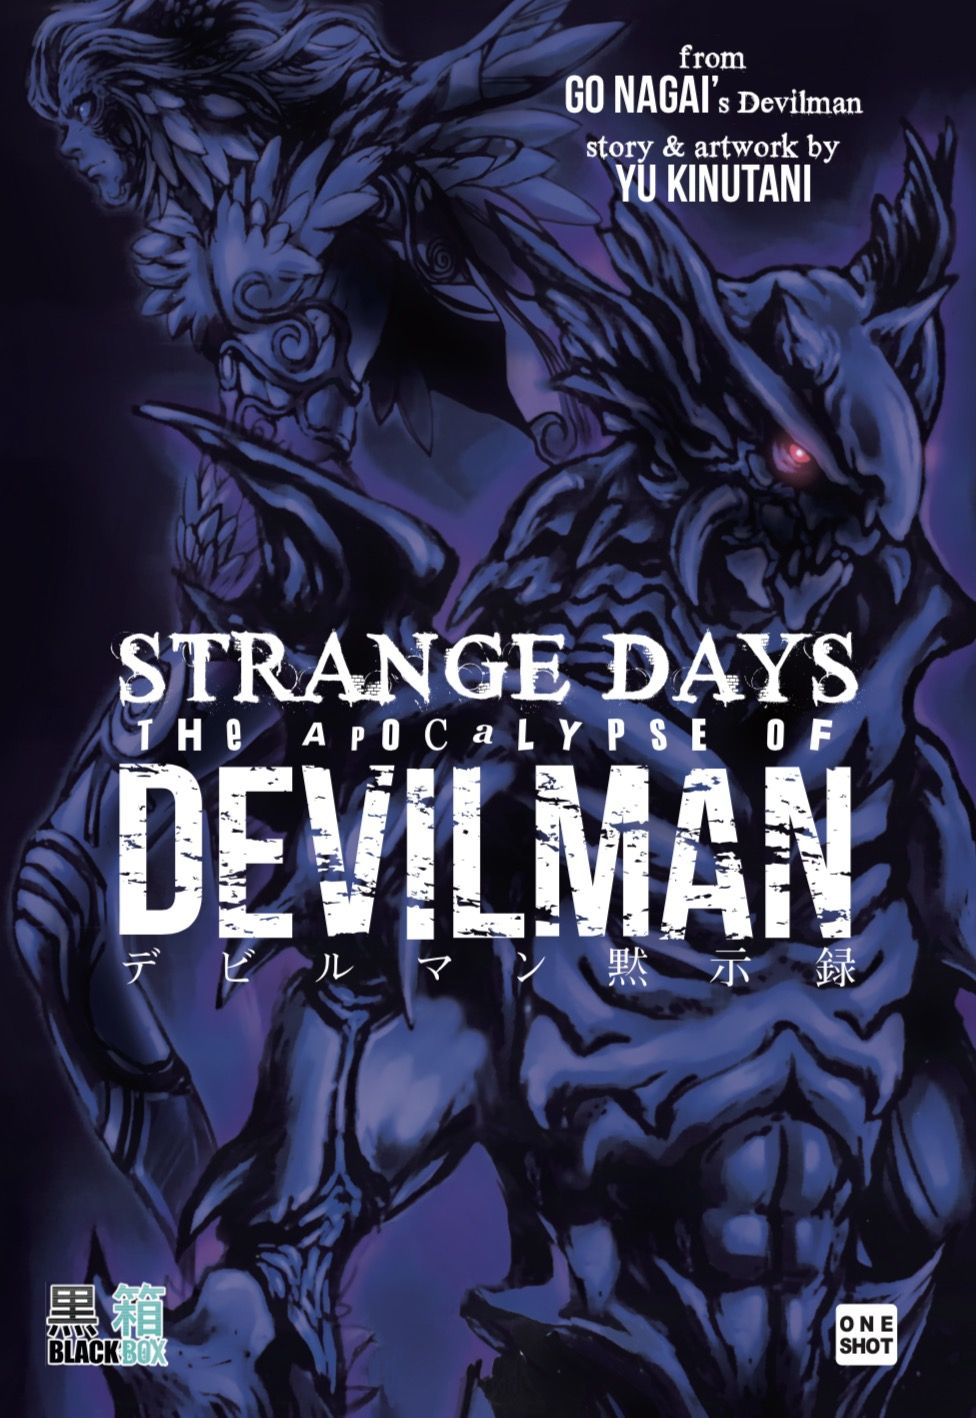 Stange-days-the-apocalypse-of-devilman-black-box